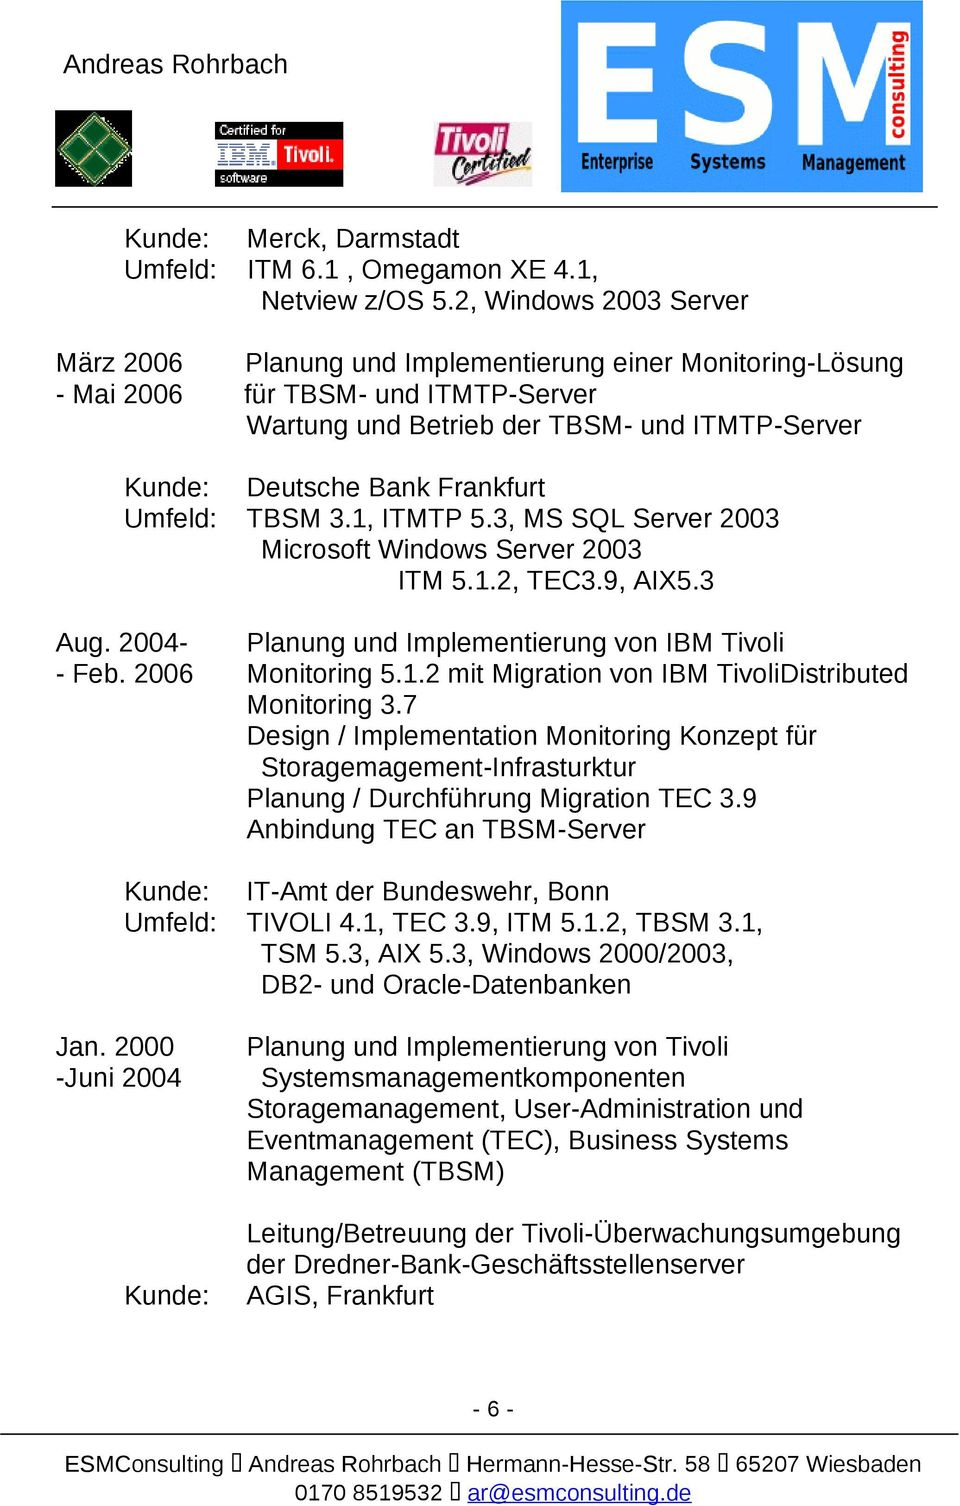 3.1, ITMTP 5.3, MS SQL Server 2003 Microsoft Windows Server 2003 ITM 5.1.2, TEC3.9, AIX5.3 Aug. 2004- Planung und Implementierung von IBM Tivoli - Feb. 2006 Monitoring 5.1.2 mit Migration von IBM TivoliDistributed Monitoring 3.